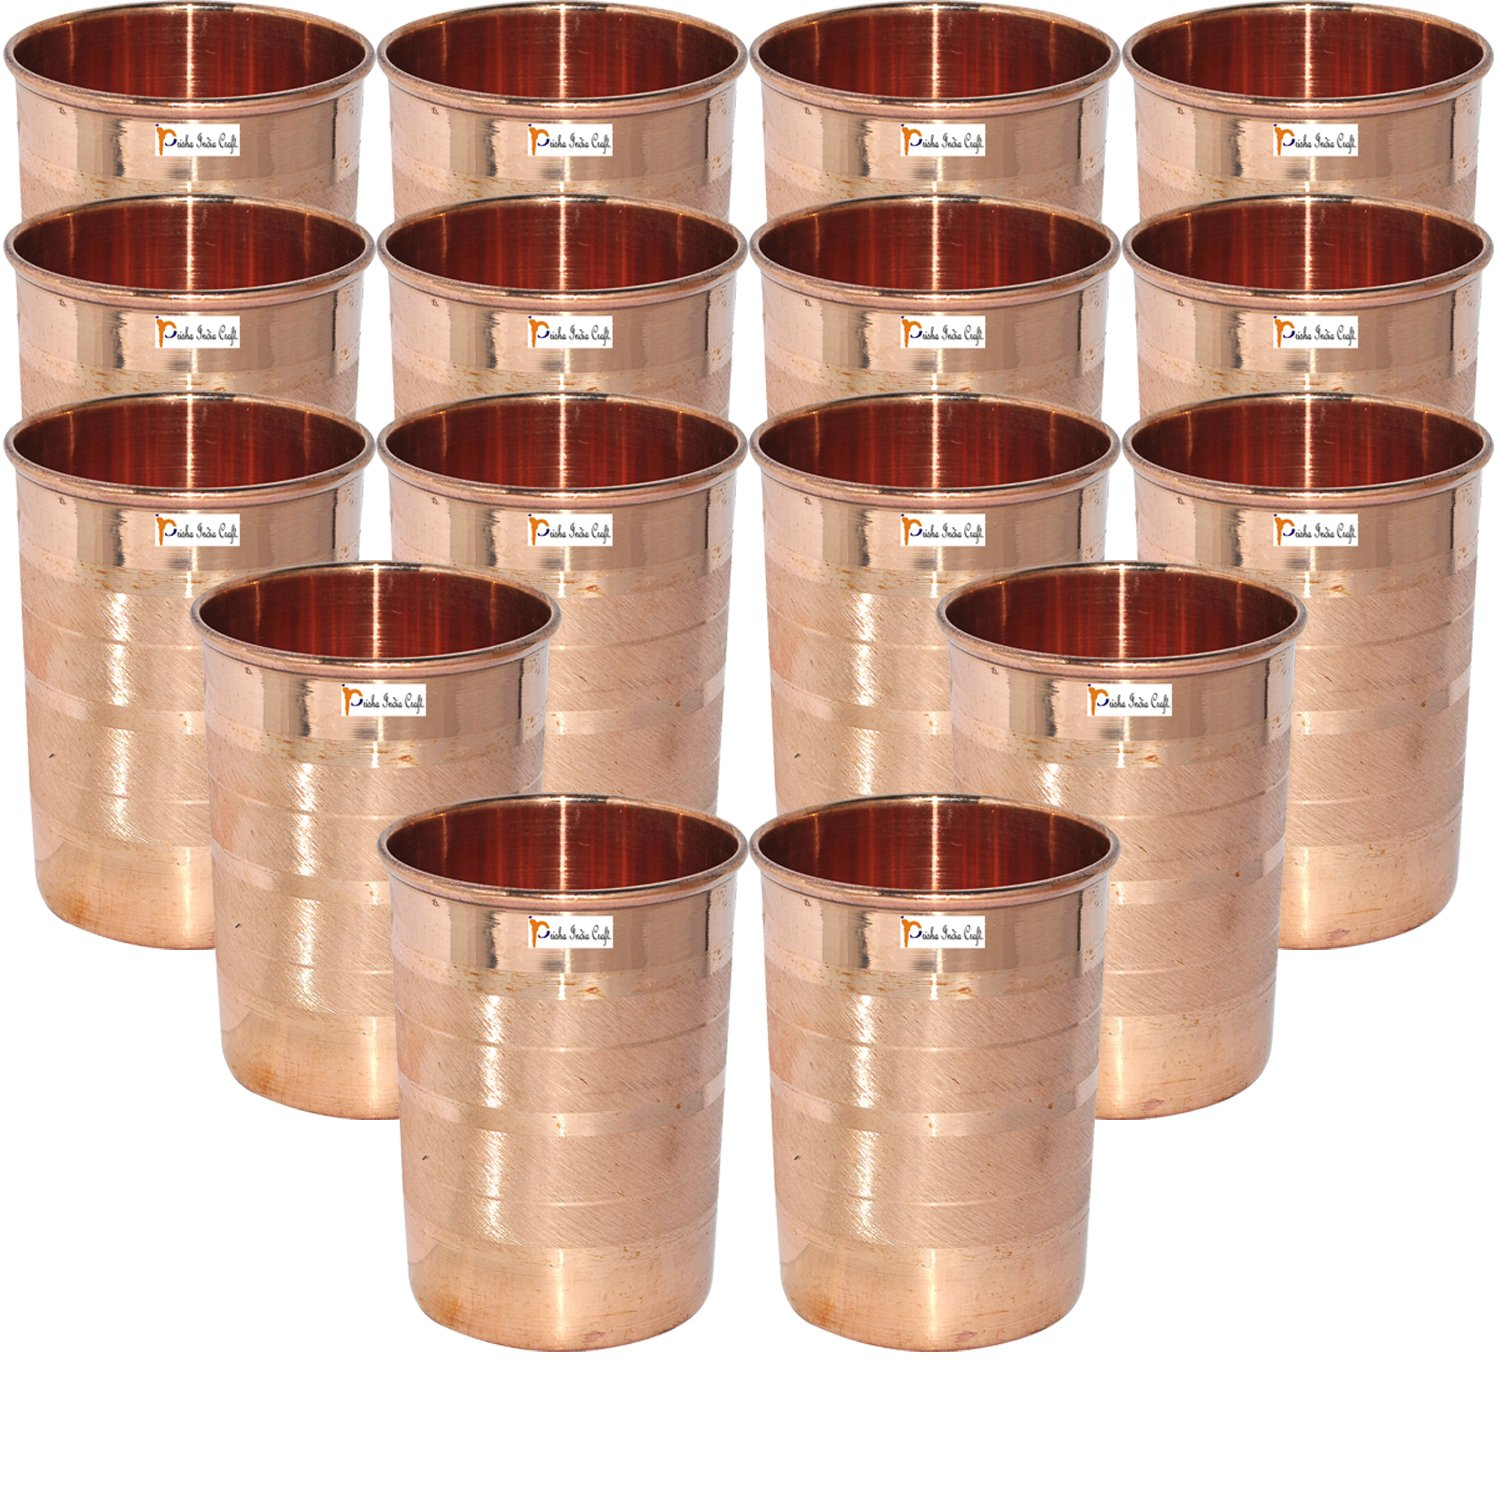 Set of 16 - Prisha India Craft Copper Cup Water Tumbler - Handmade Water Glasses - Traveller's Copper Mug for Ayurveda Benefits - CHRISTMAS GIFT ITEM